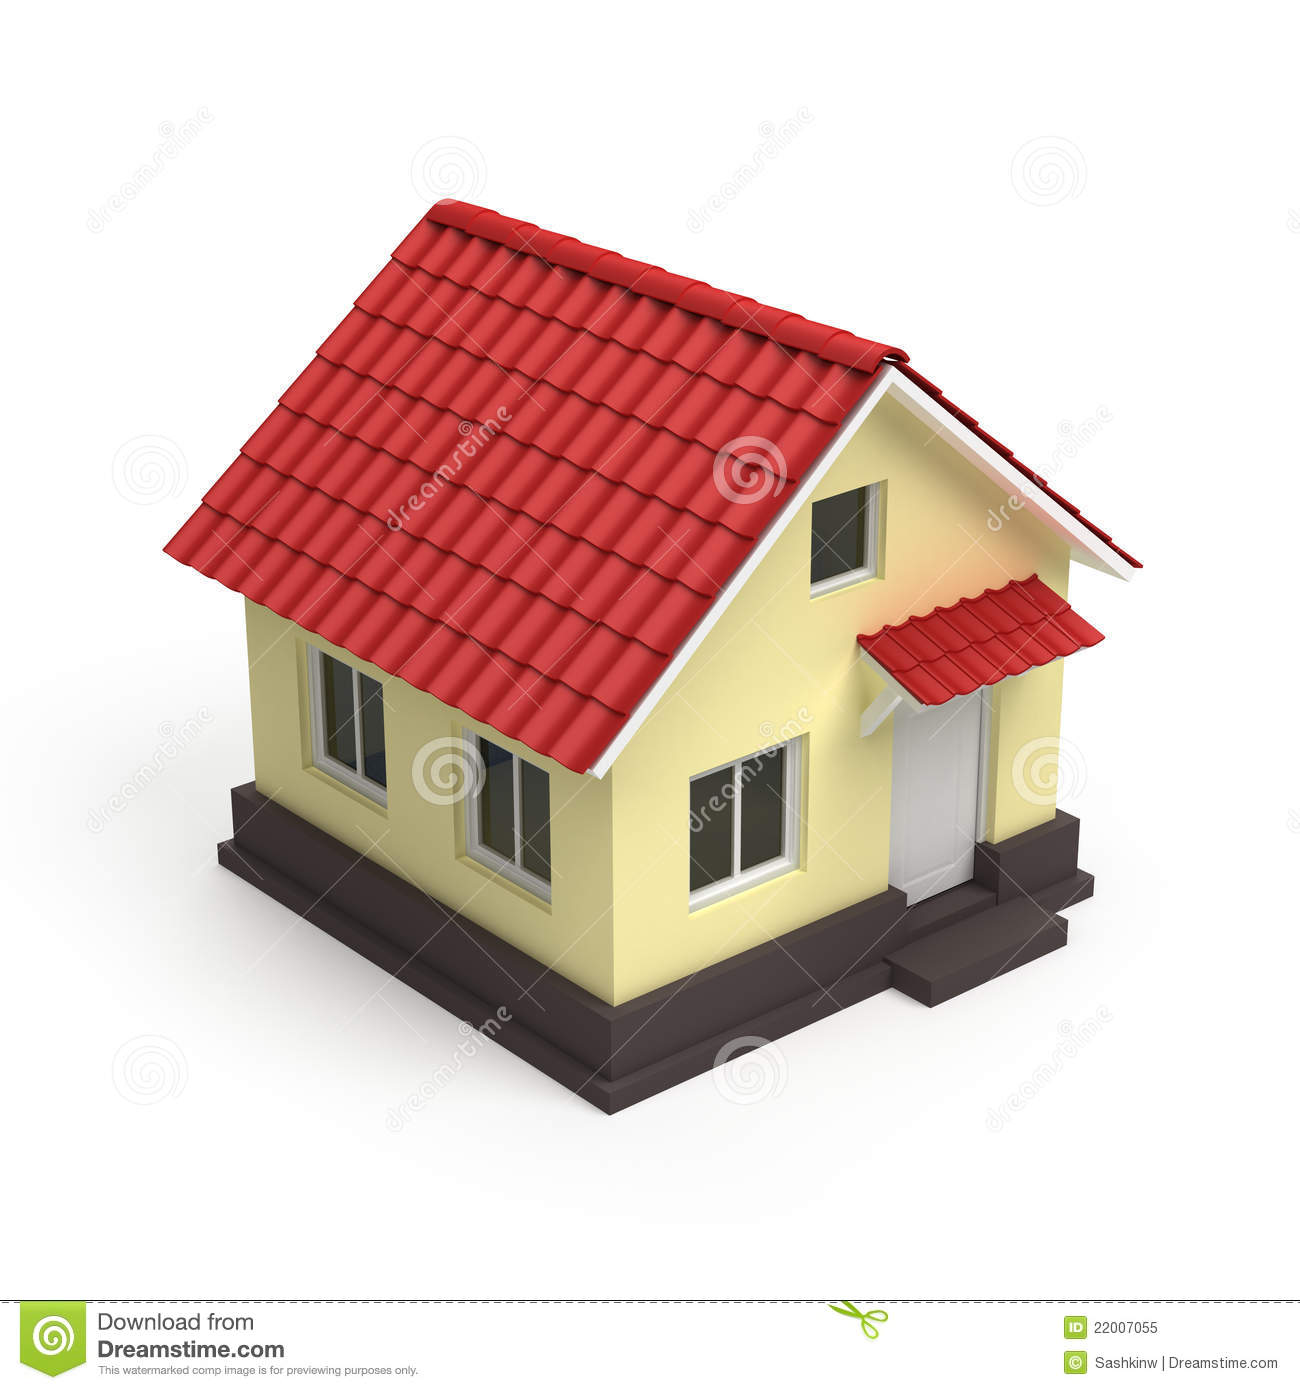 House 3d Icon Royalty Free Stock Photo Image 22007055